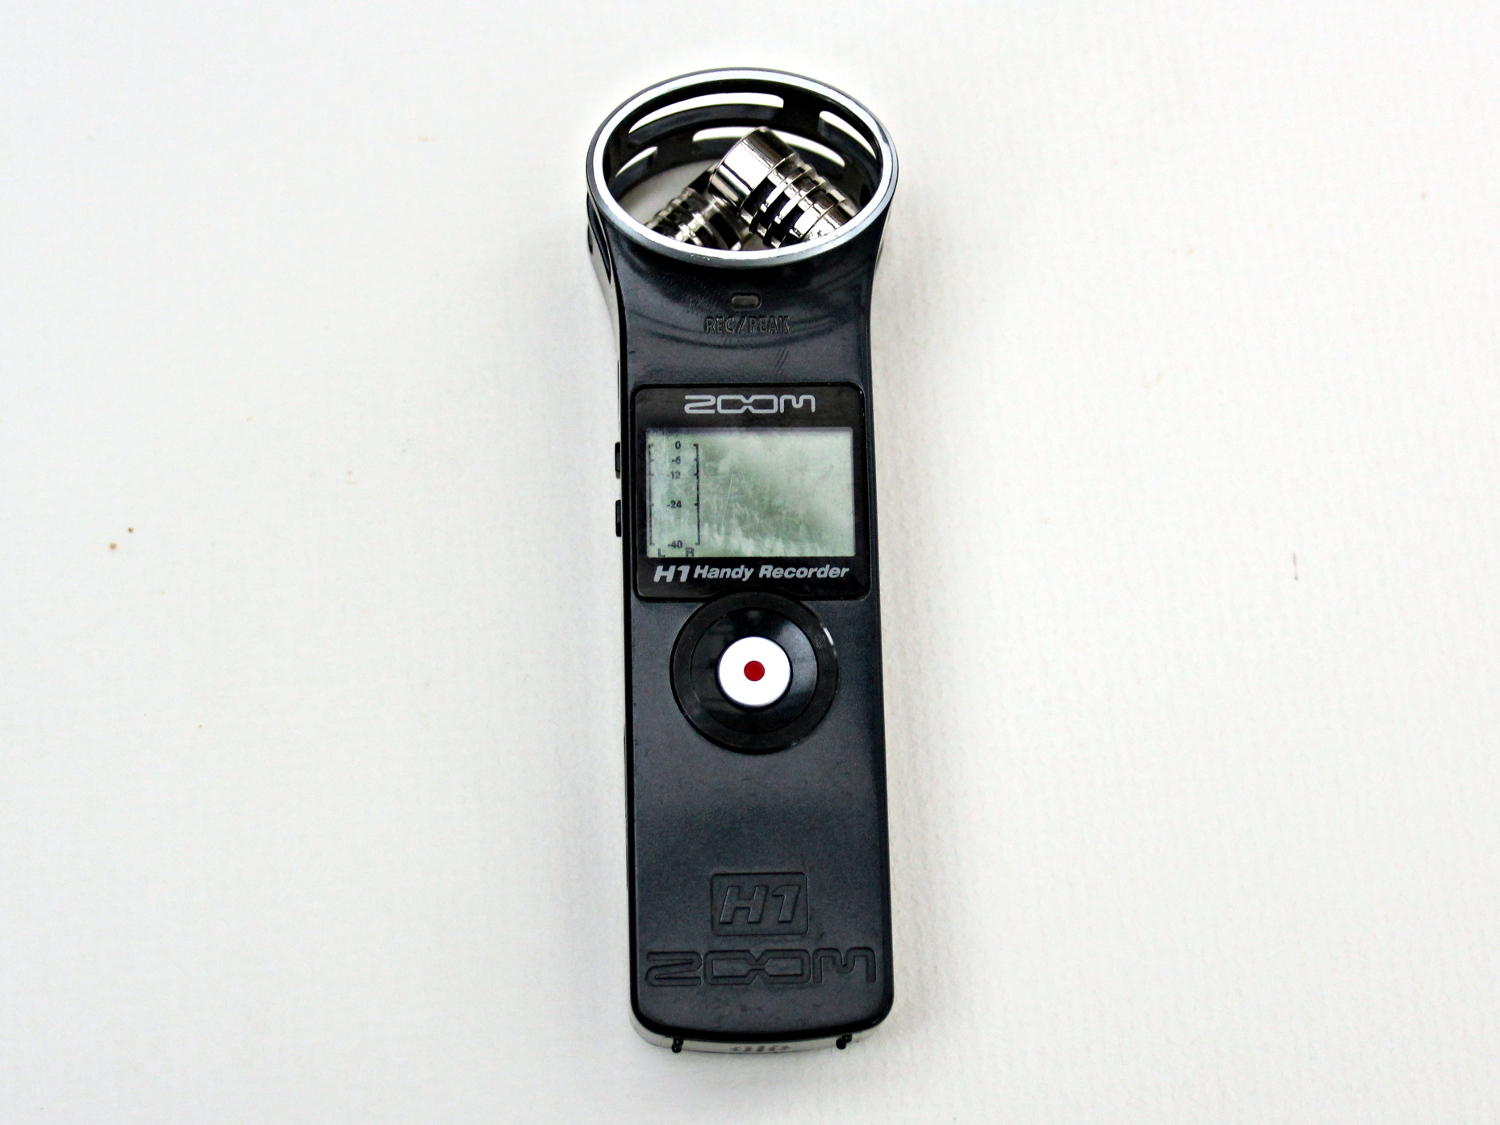 A zoom H1 handheld audio recorder. These are useful for practice as it is easy to record yourself playing and listen back to hear your mistakes. They have good sound quality for the cost